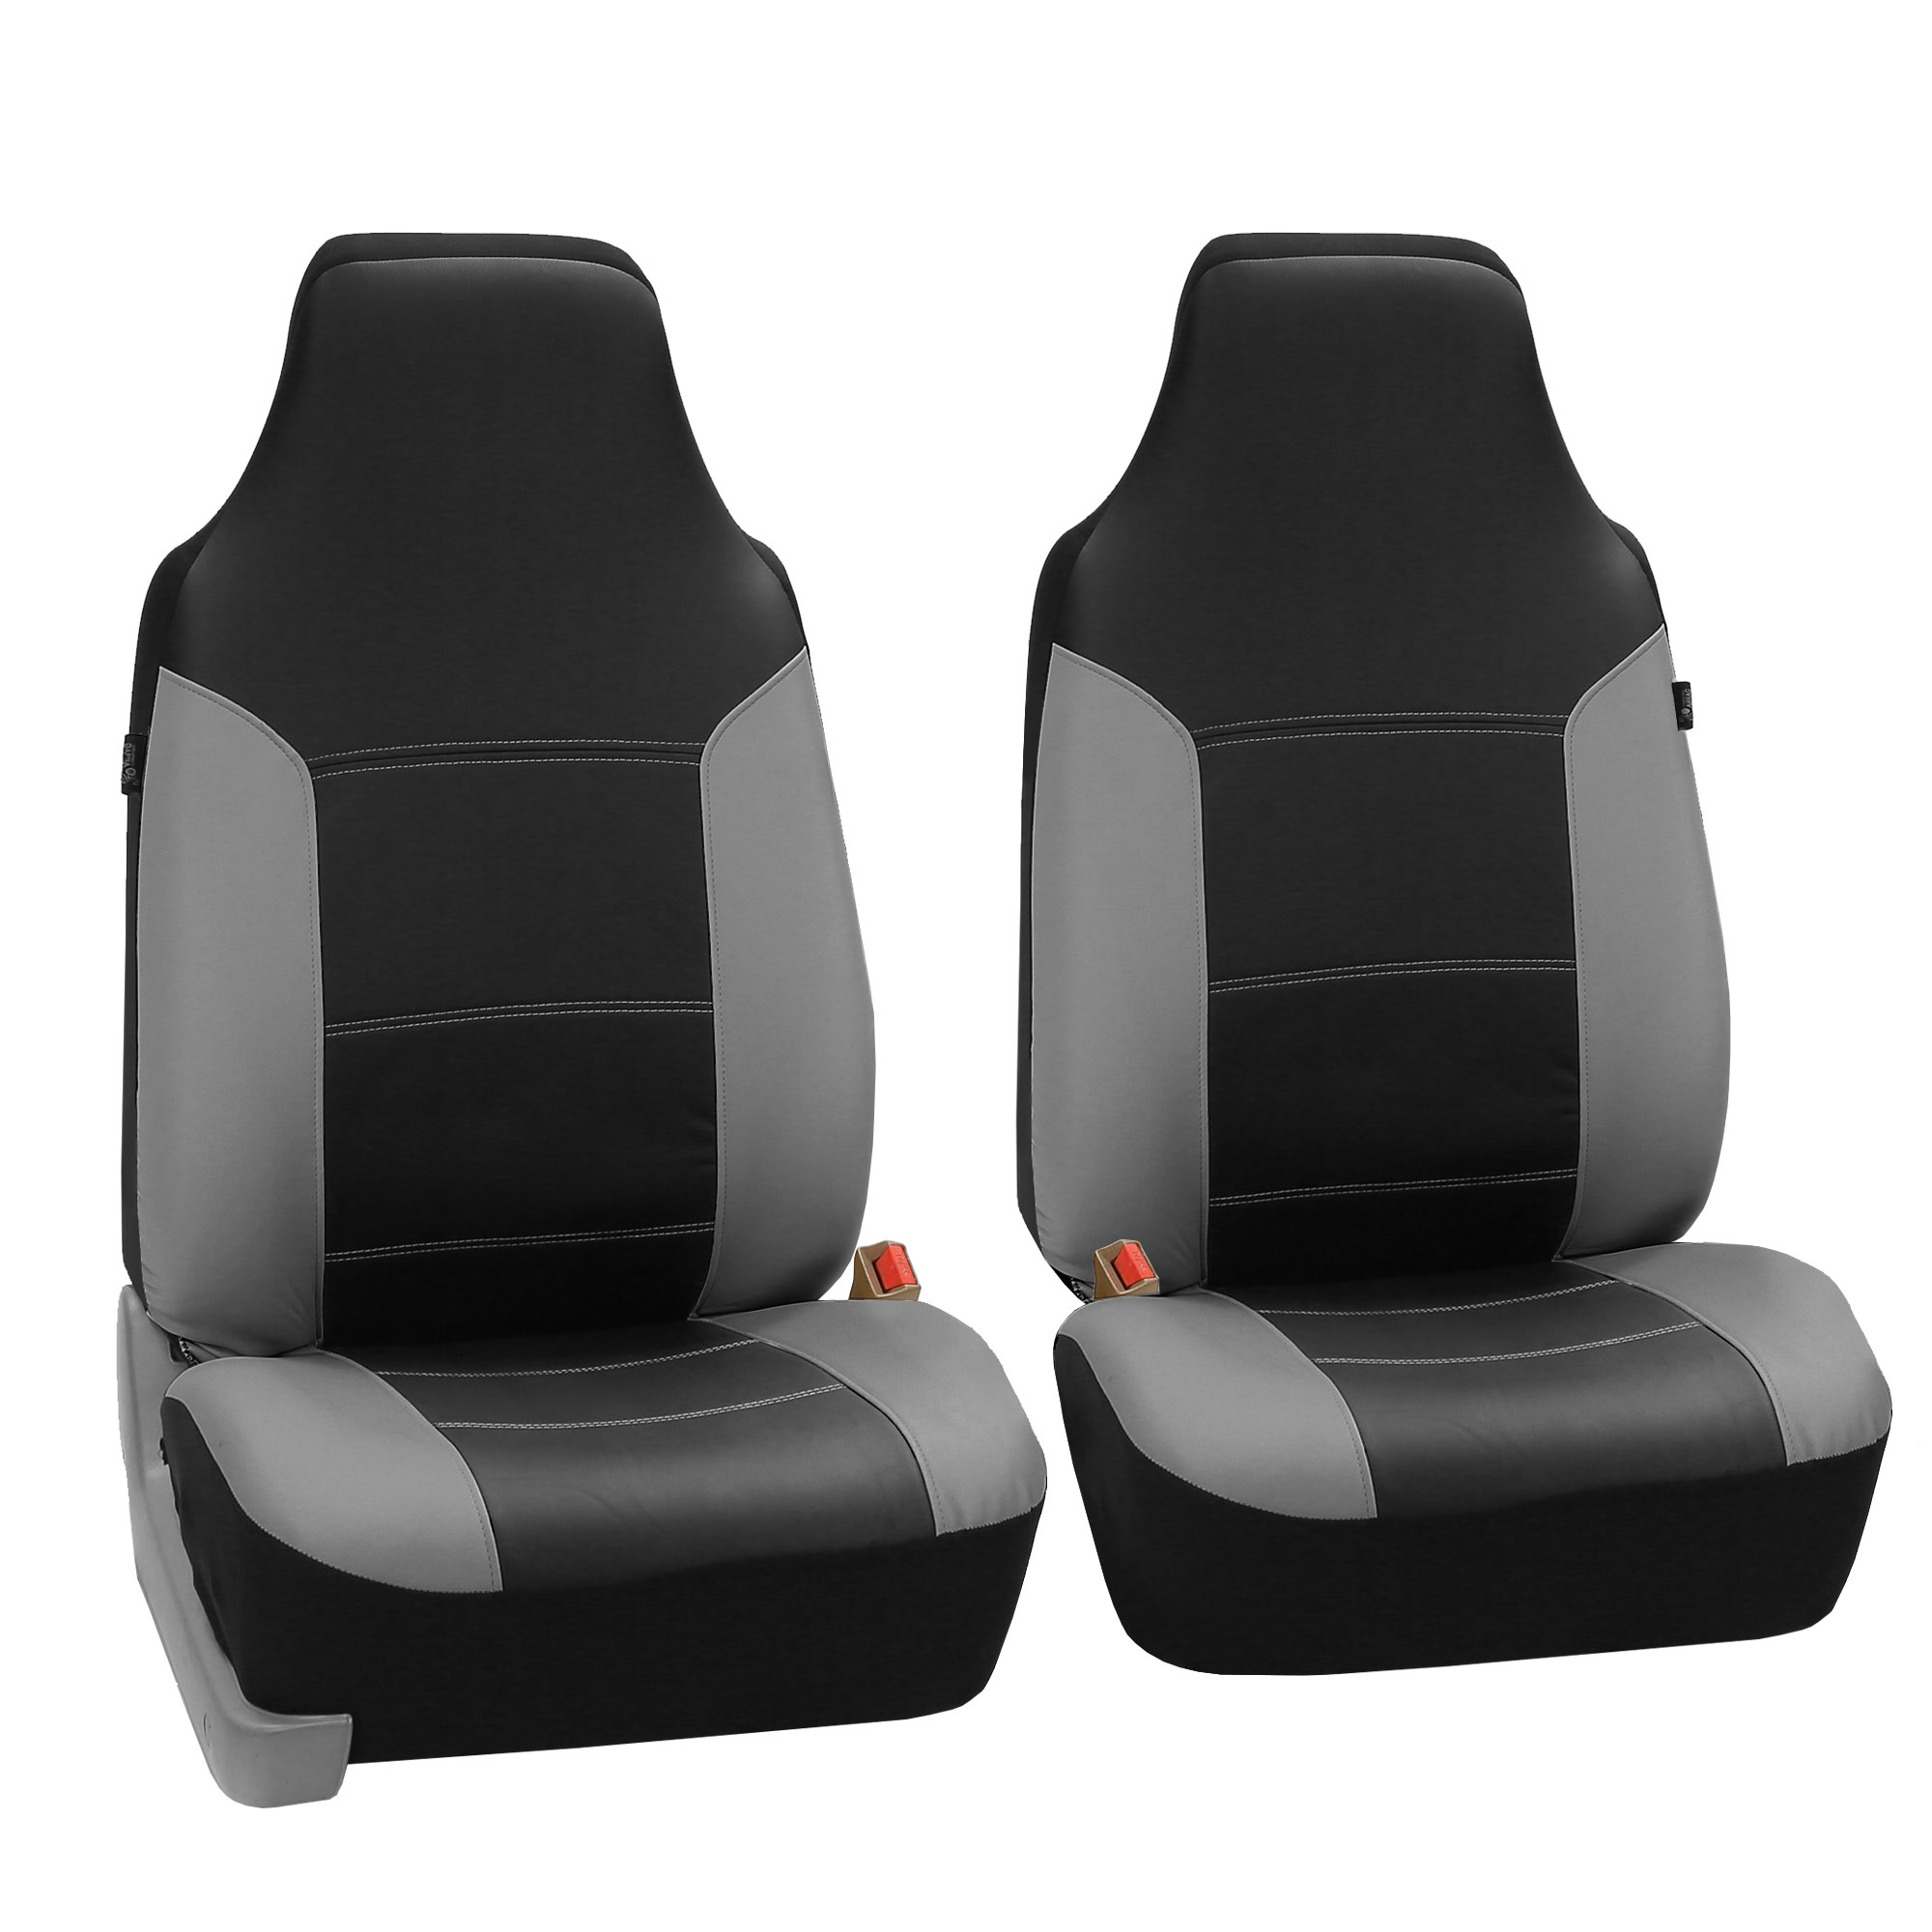 FH Group Highback Seat Royal Leather Seat Covers for Sedan, SUV, Van, Truck, Two Highback Buckets, Black Gray